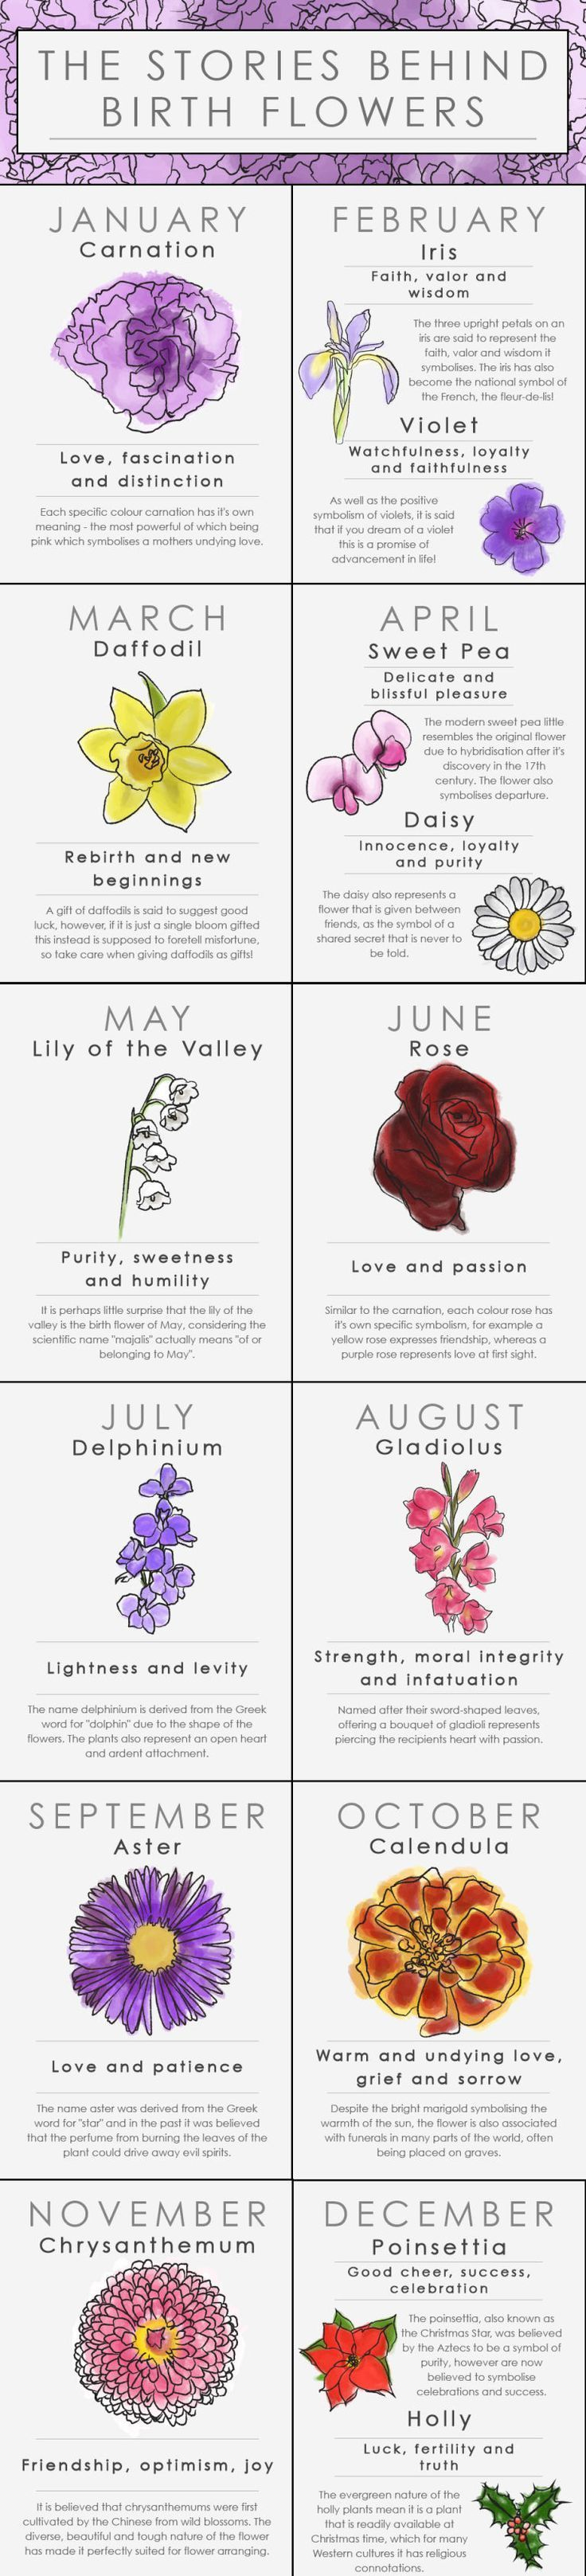 Best 25 birth flower tattoos ideas on pinterest birth flowers what your birth flower says about your personality dhlflorist Gallery